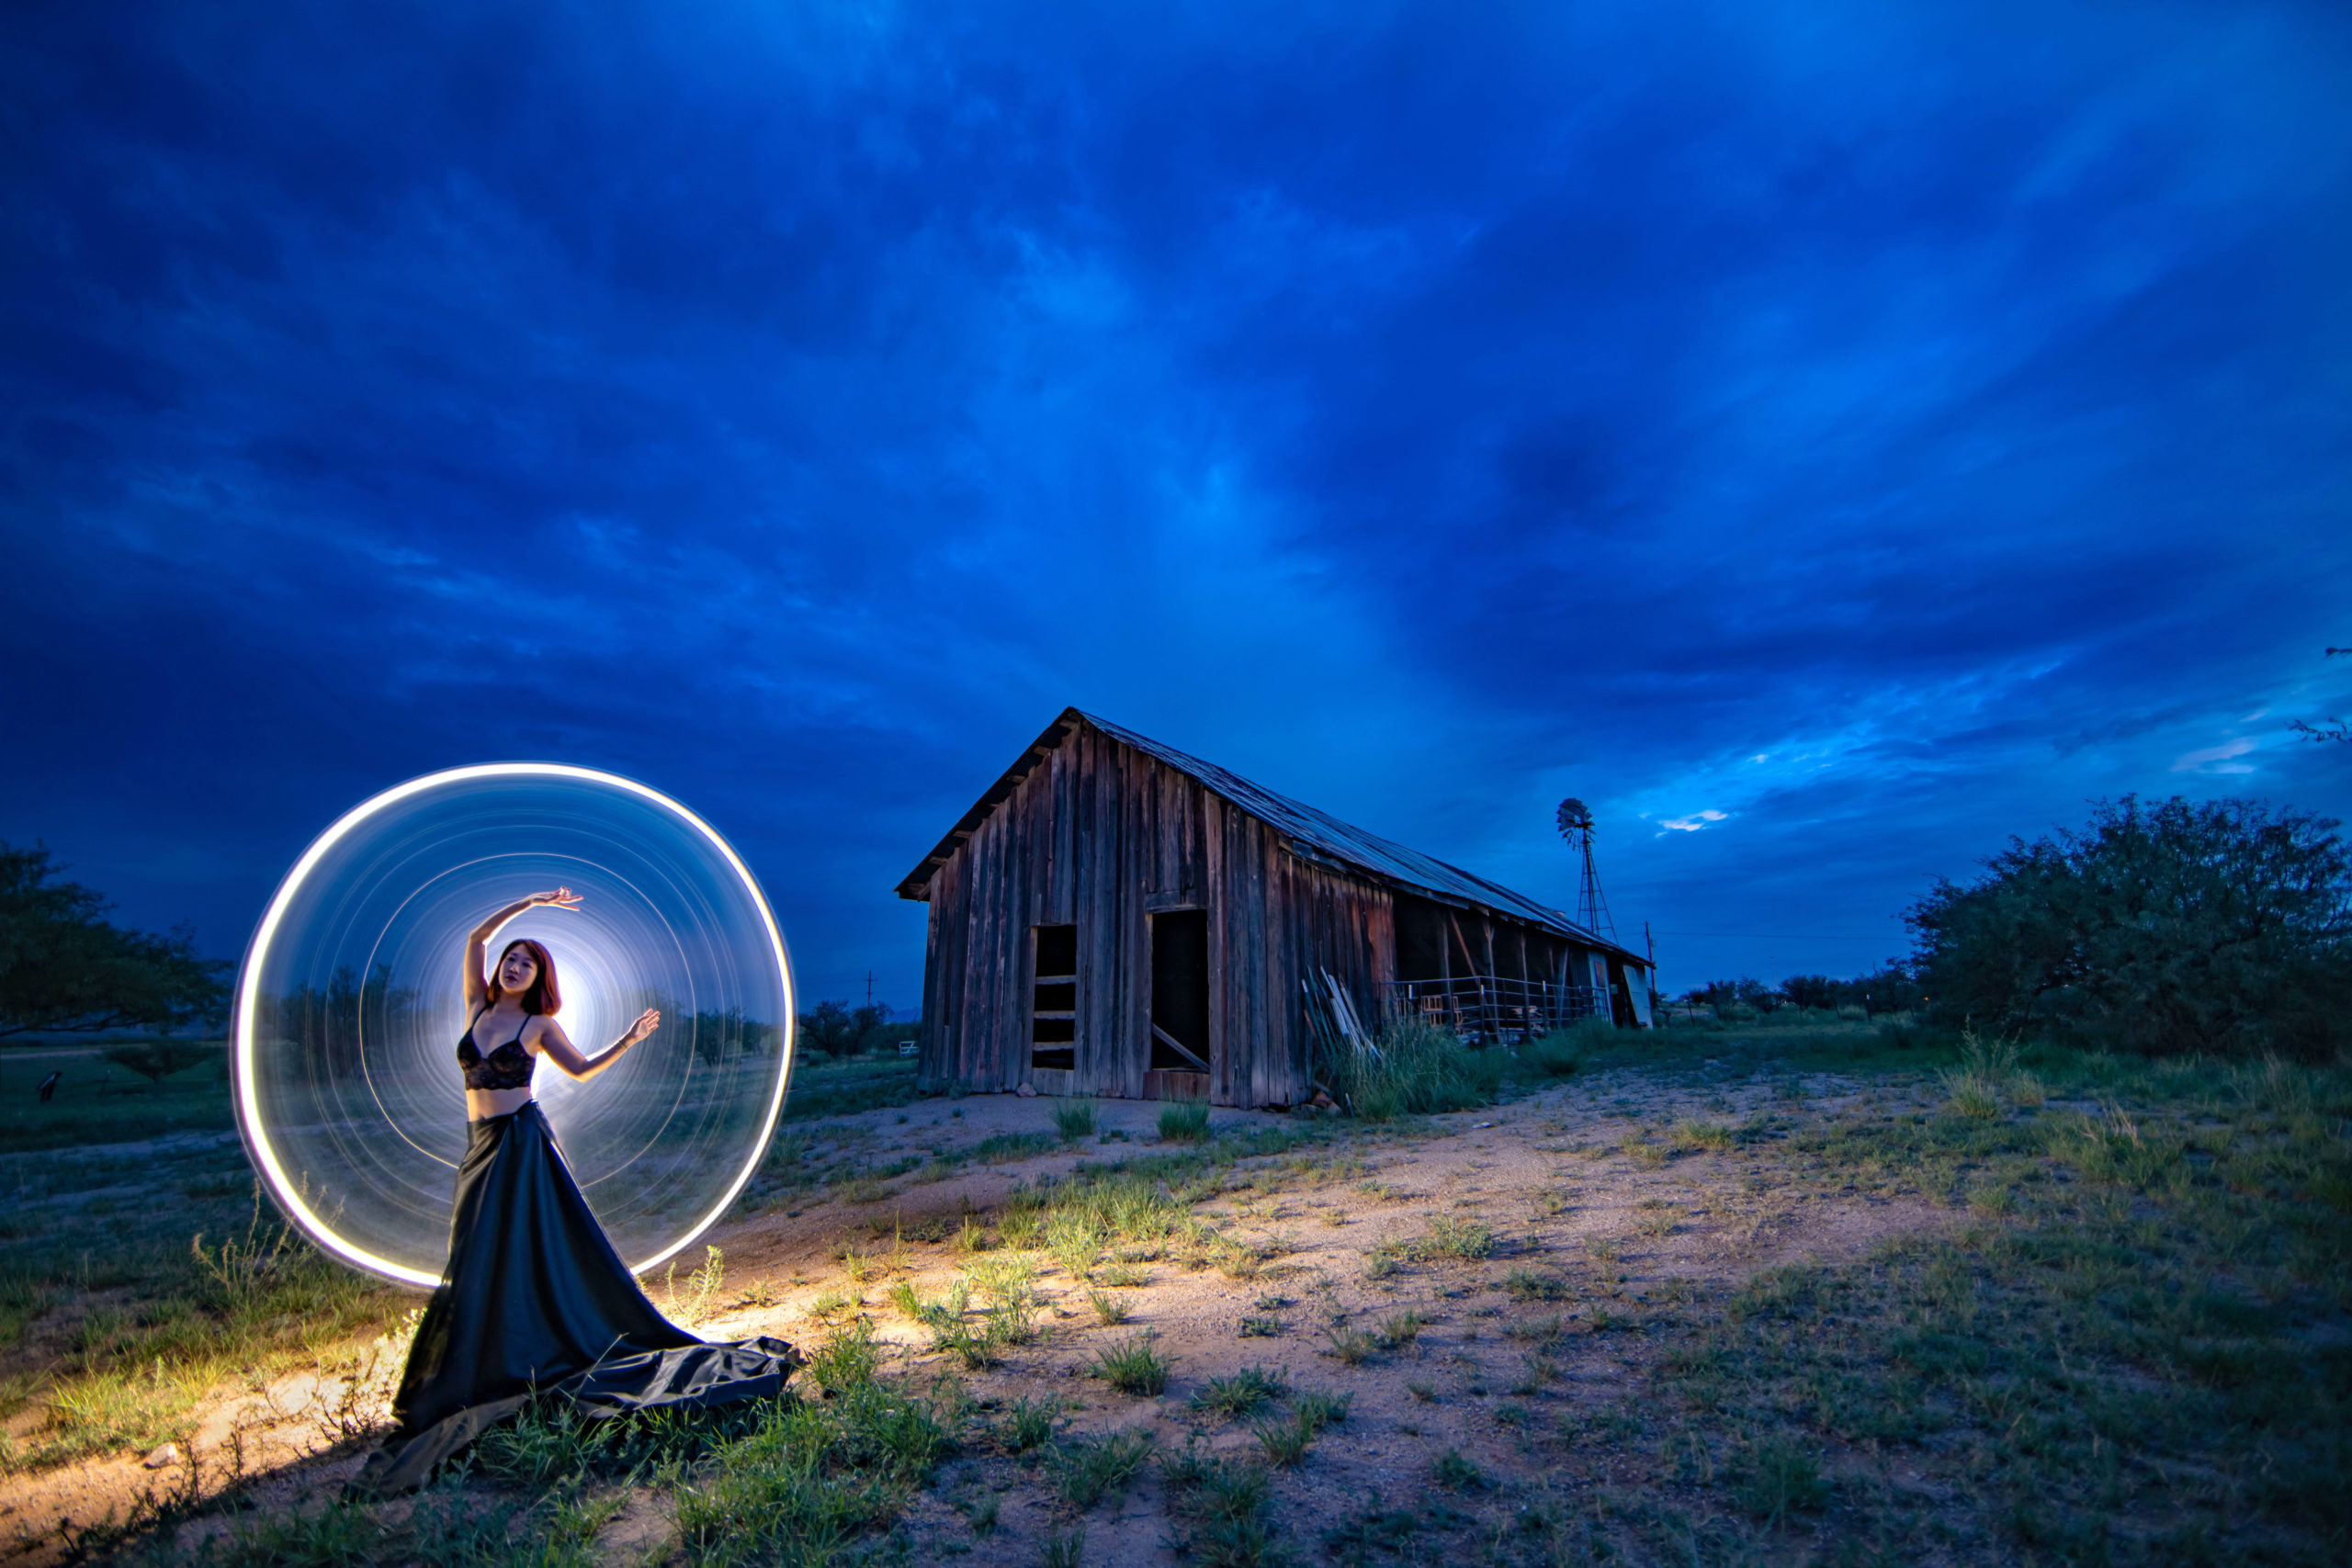 Kay He explores light painting in the Wild West